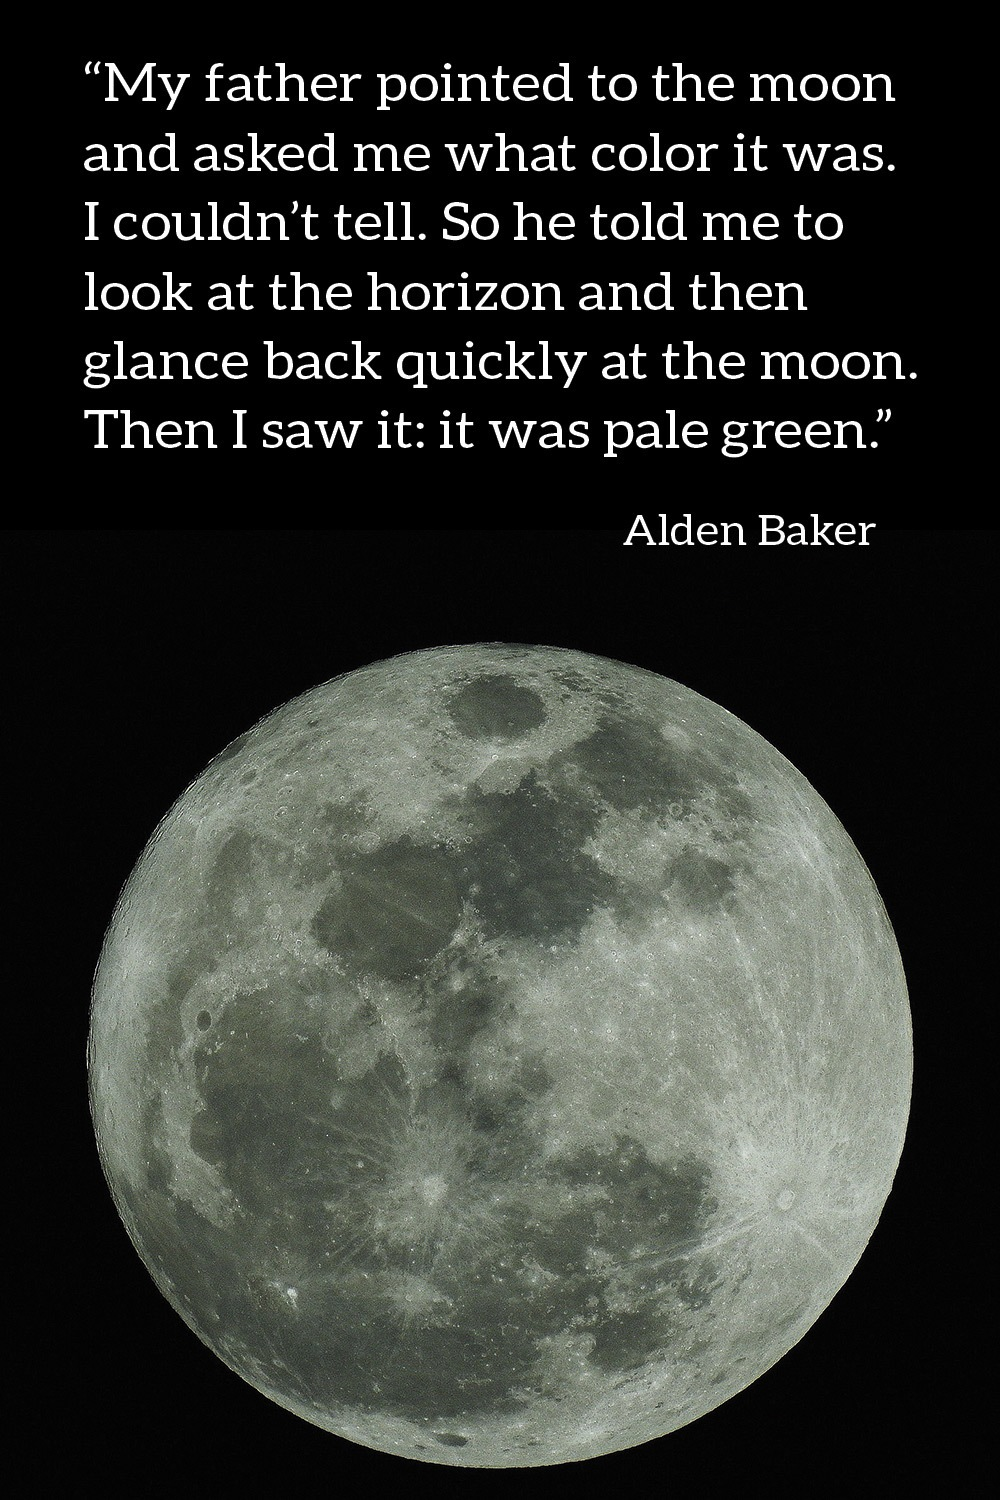 Alden Baker Quote About the Color Green